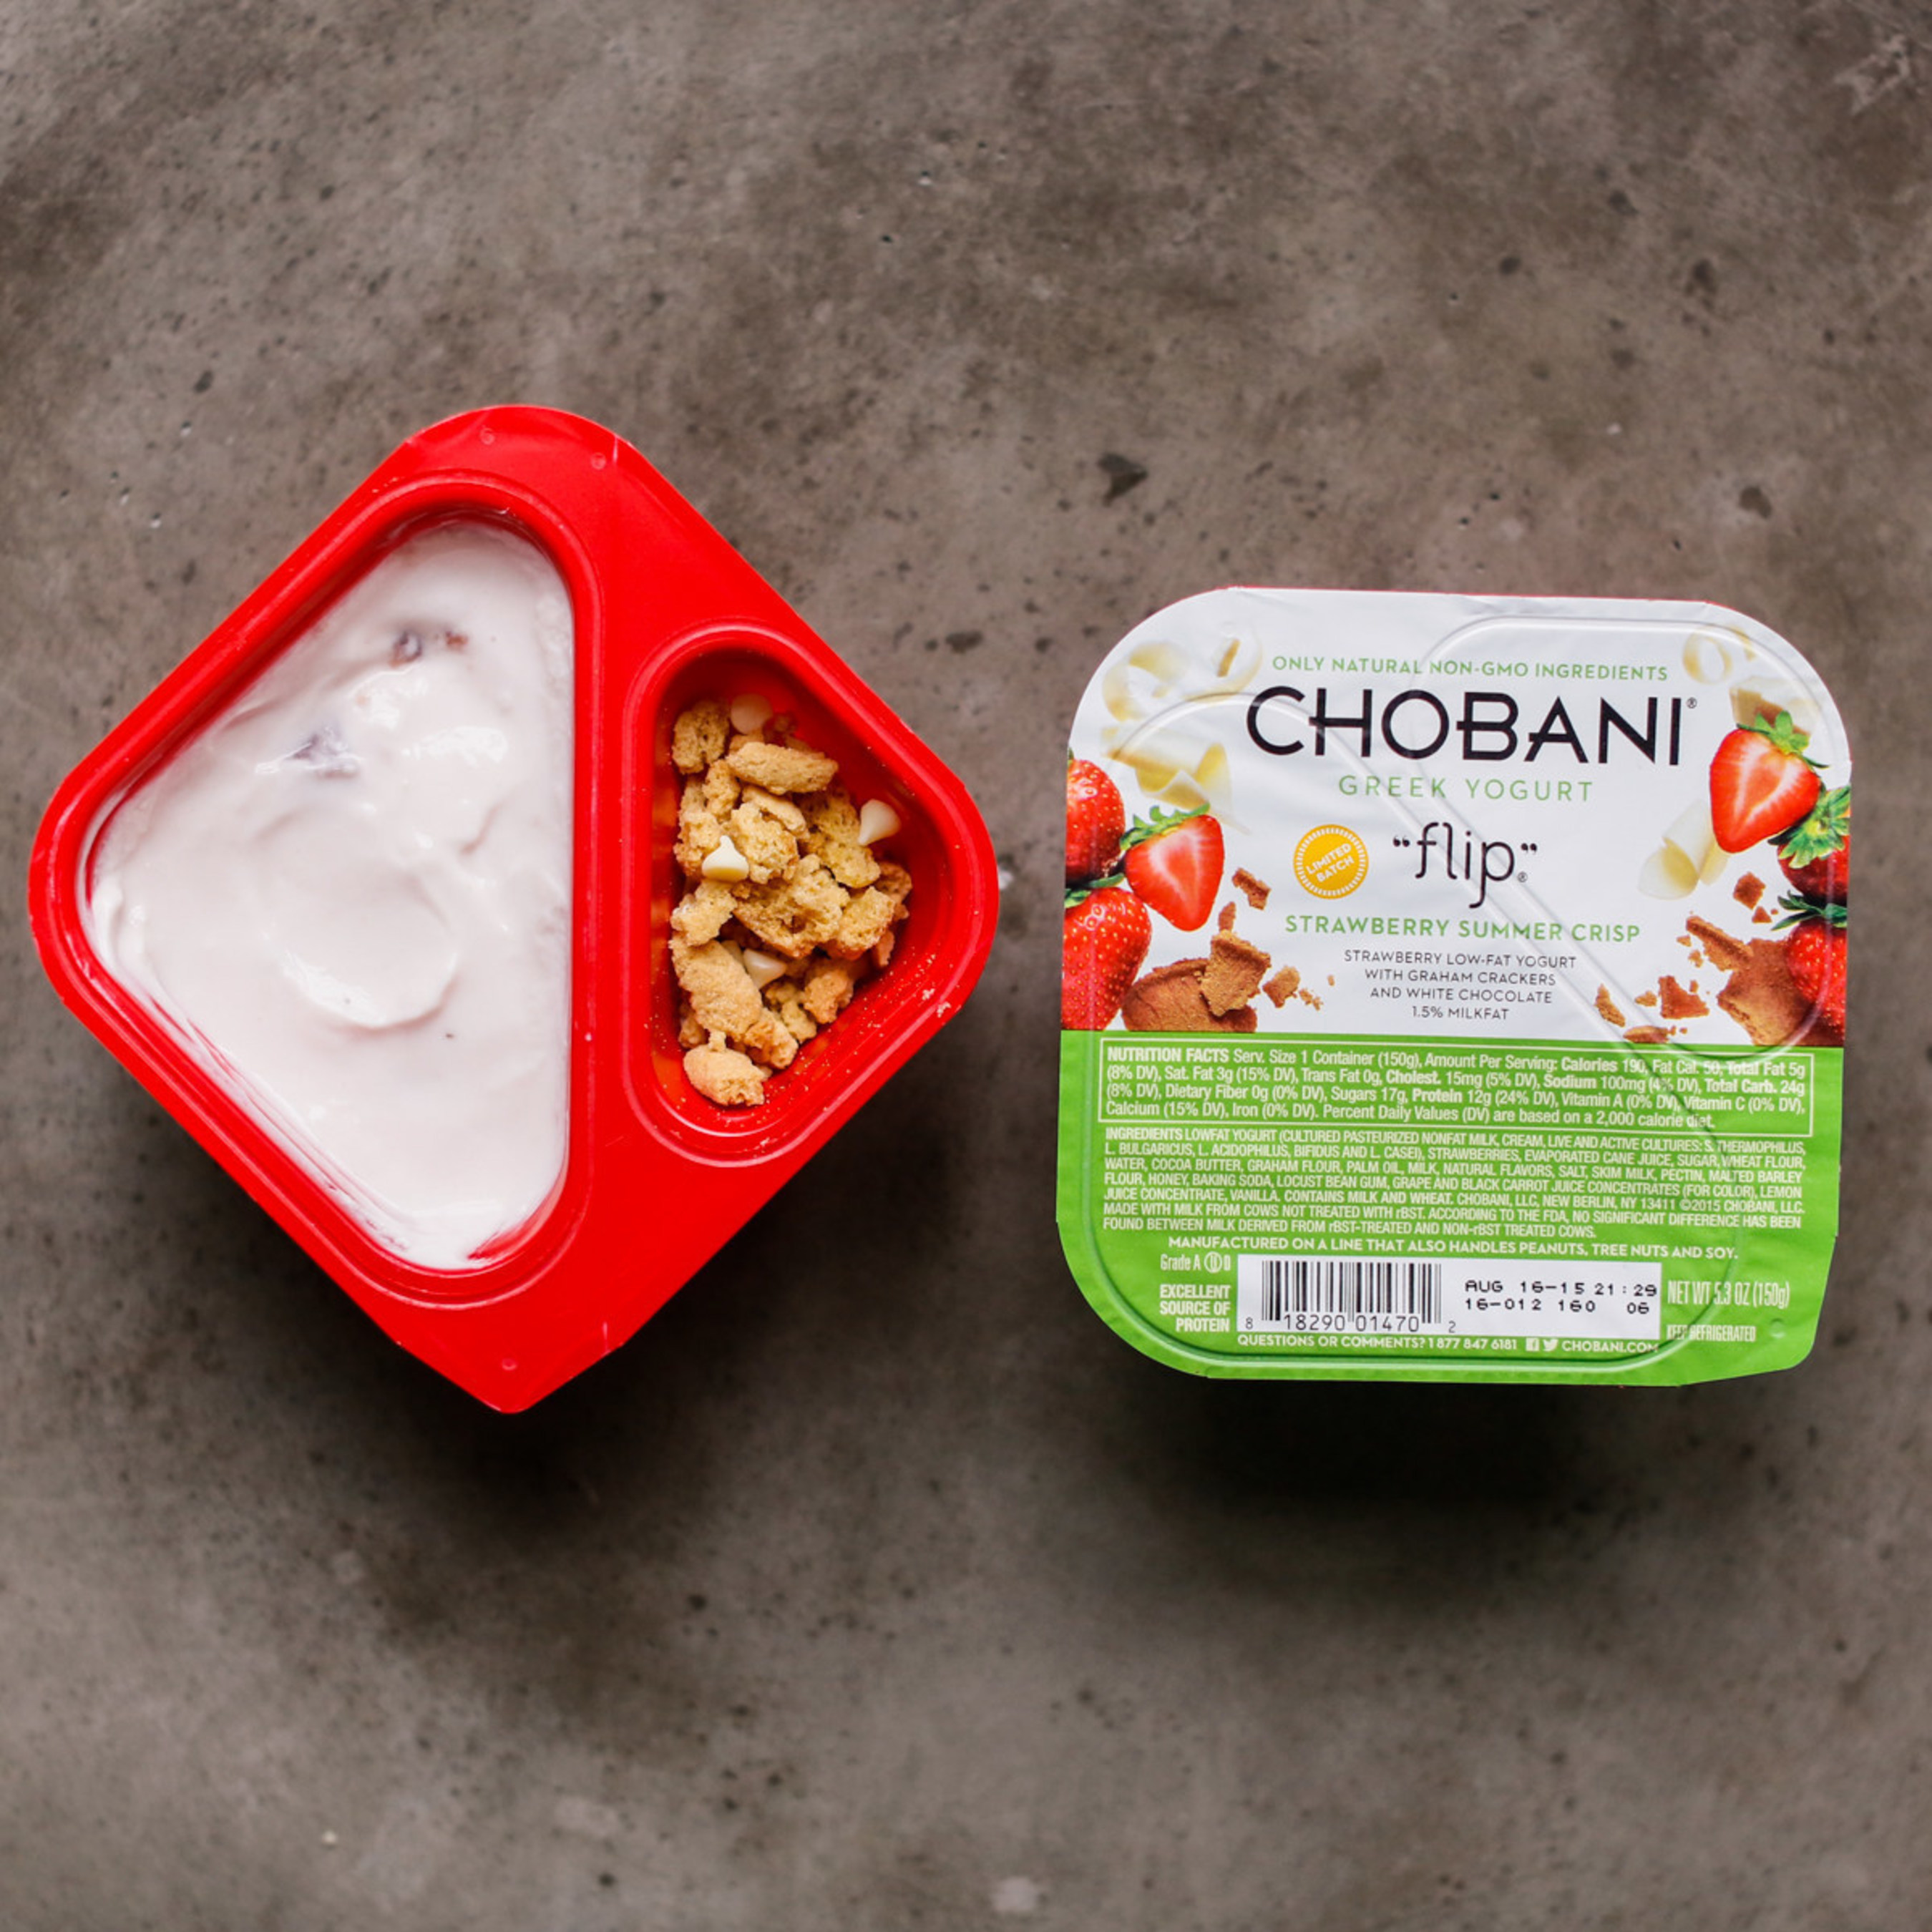 Chobani Limited Batch Strawberry Summer Crisp is the perfect taste of the season with creamy Greek Yogurt and real, delicious, natural ingredients to mix in!